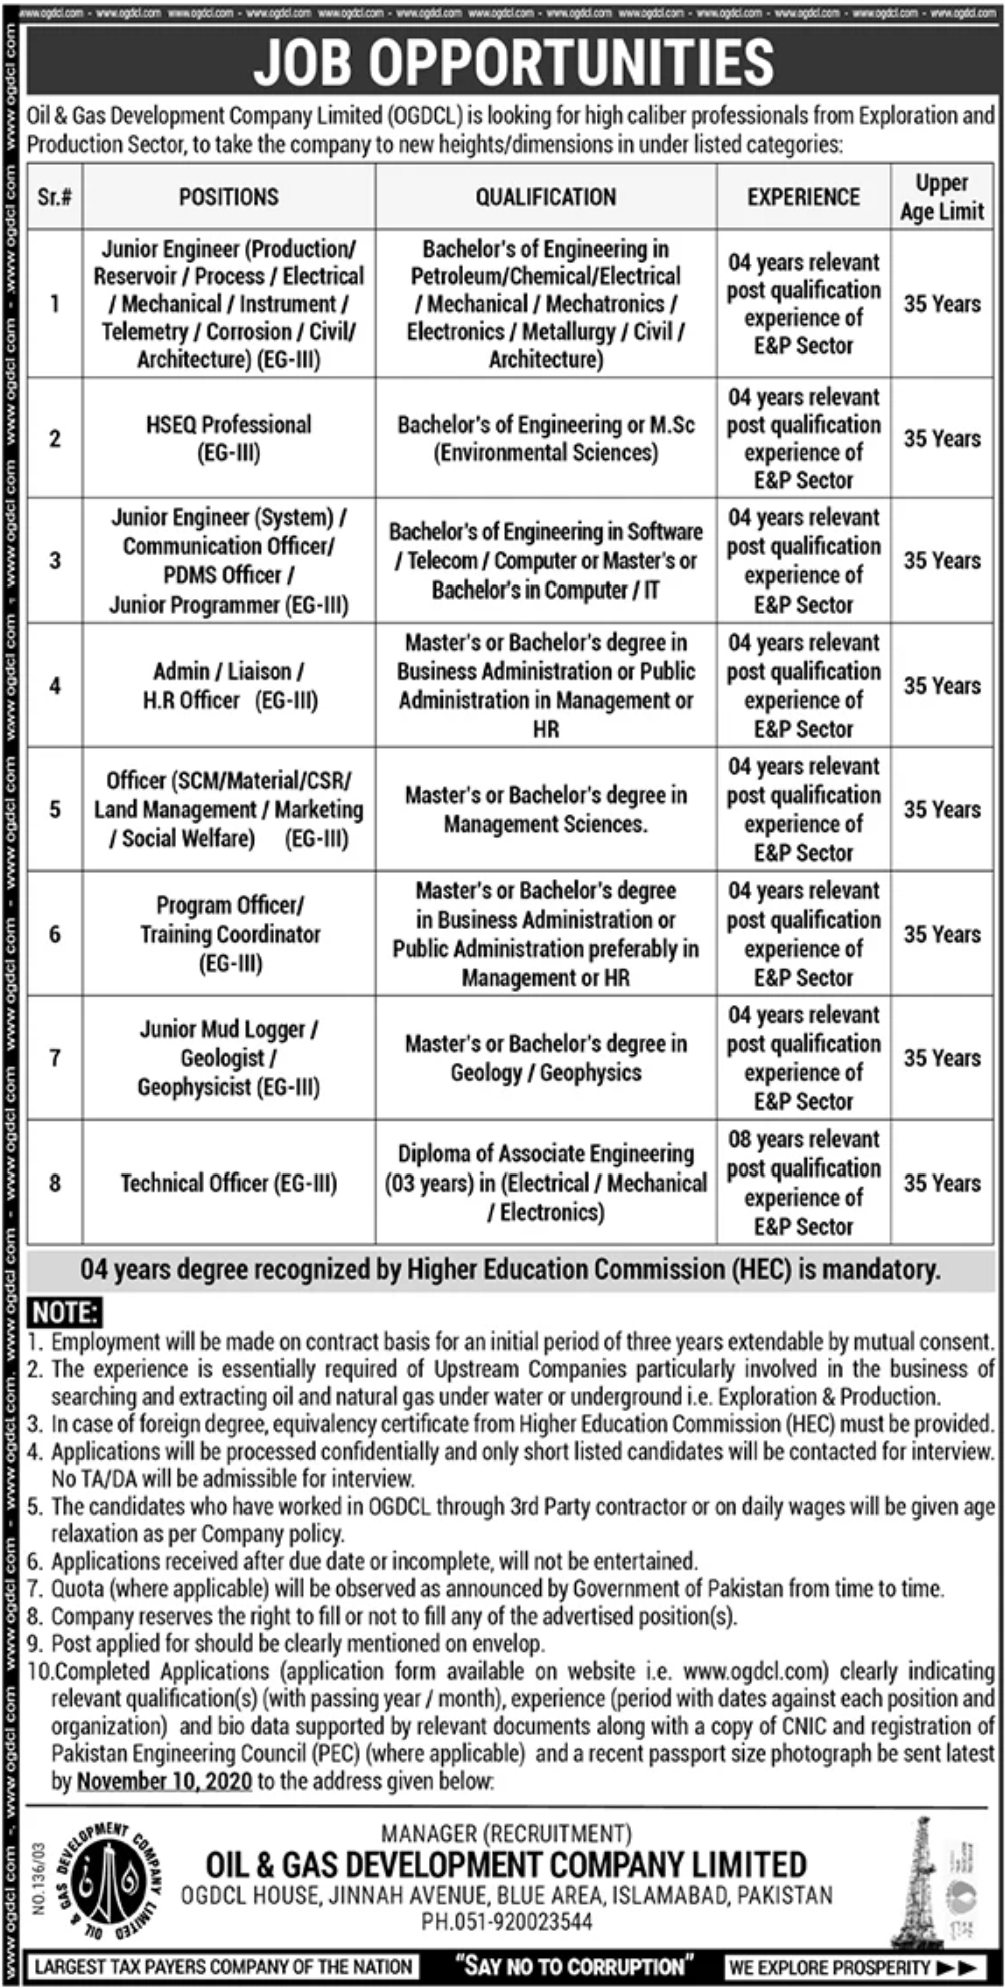 Oil & Gas Development Company Limited (OGDCL) Jobs October 2020